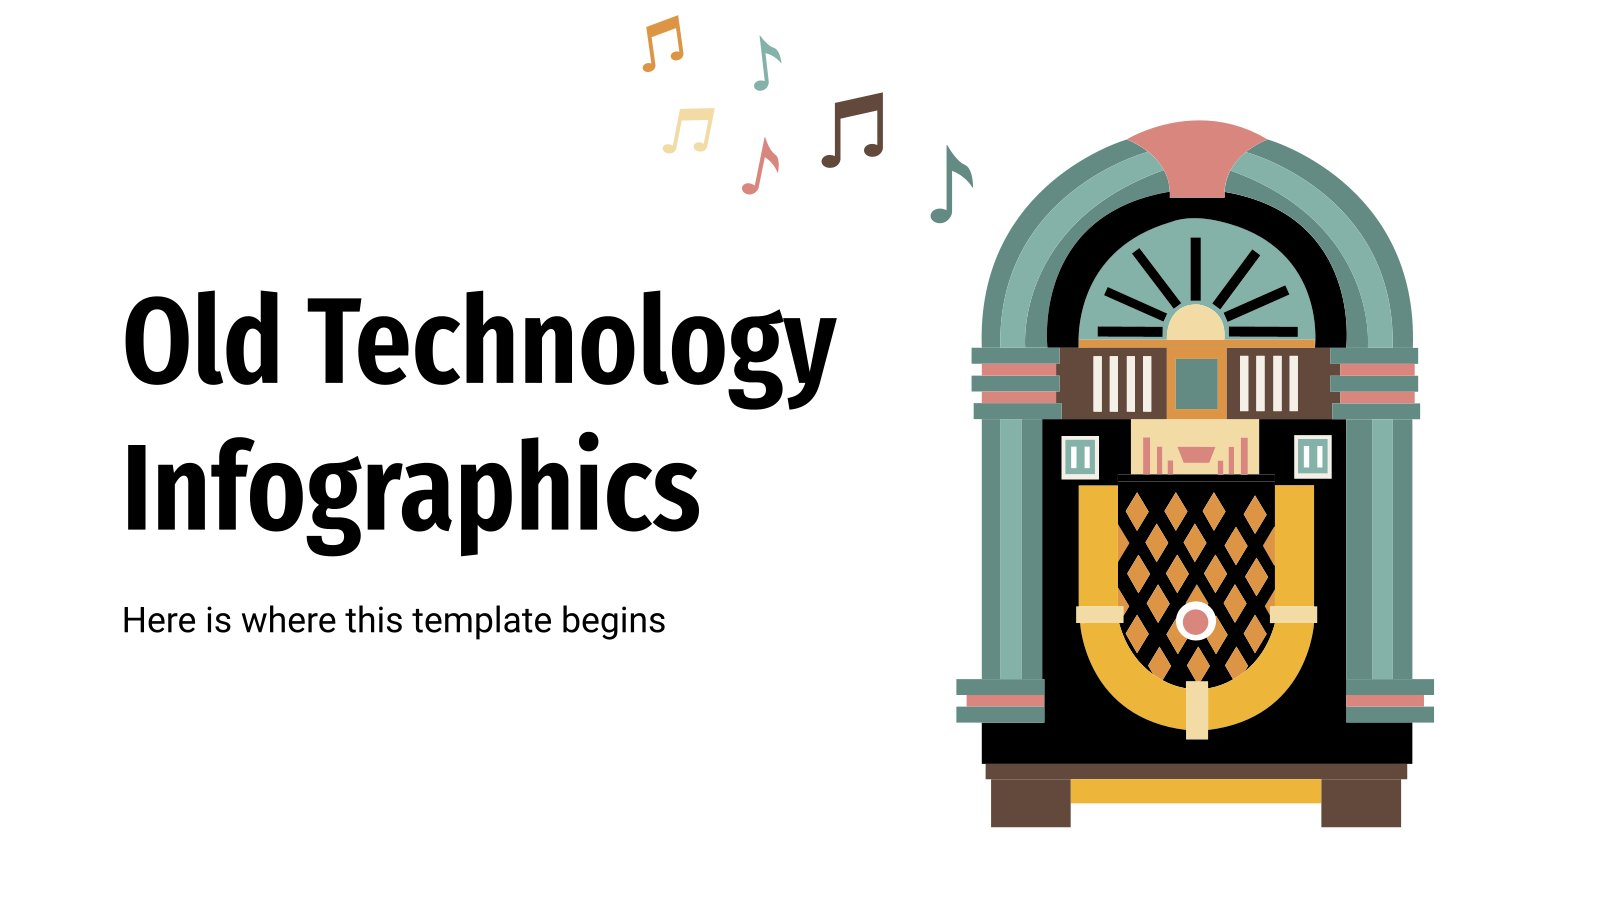 Old Technology Infographics presentation template